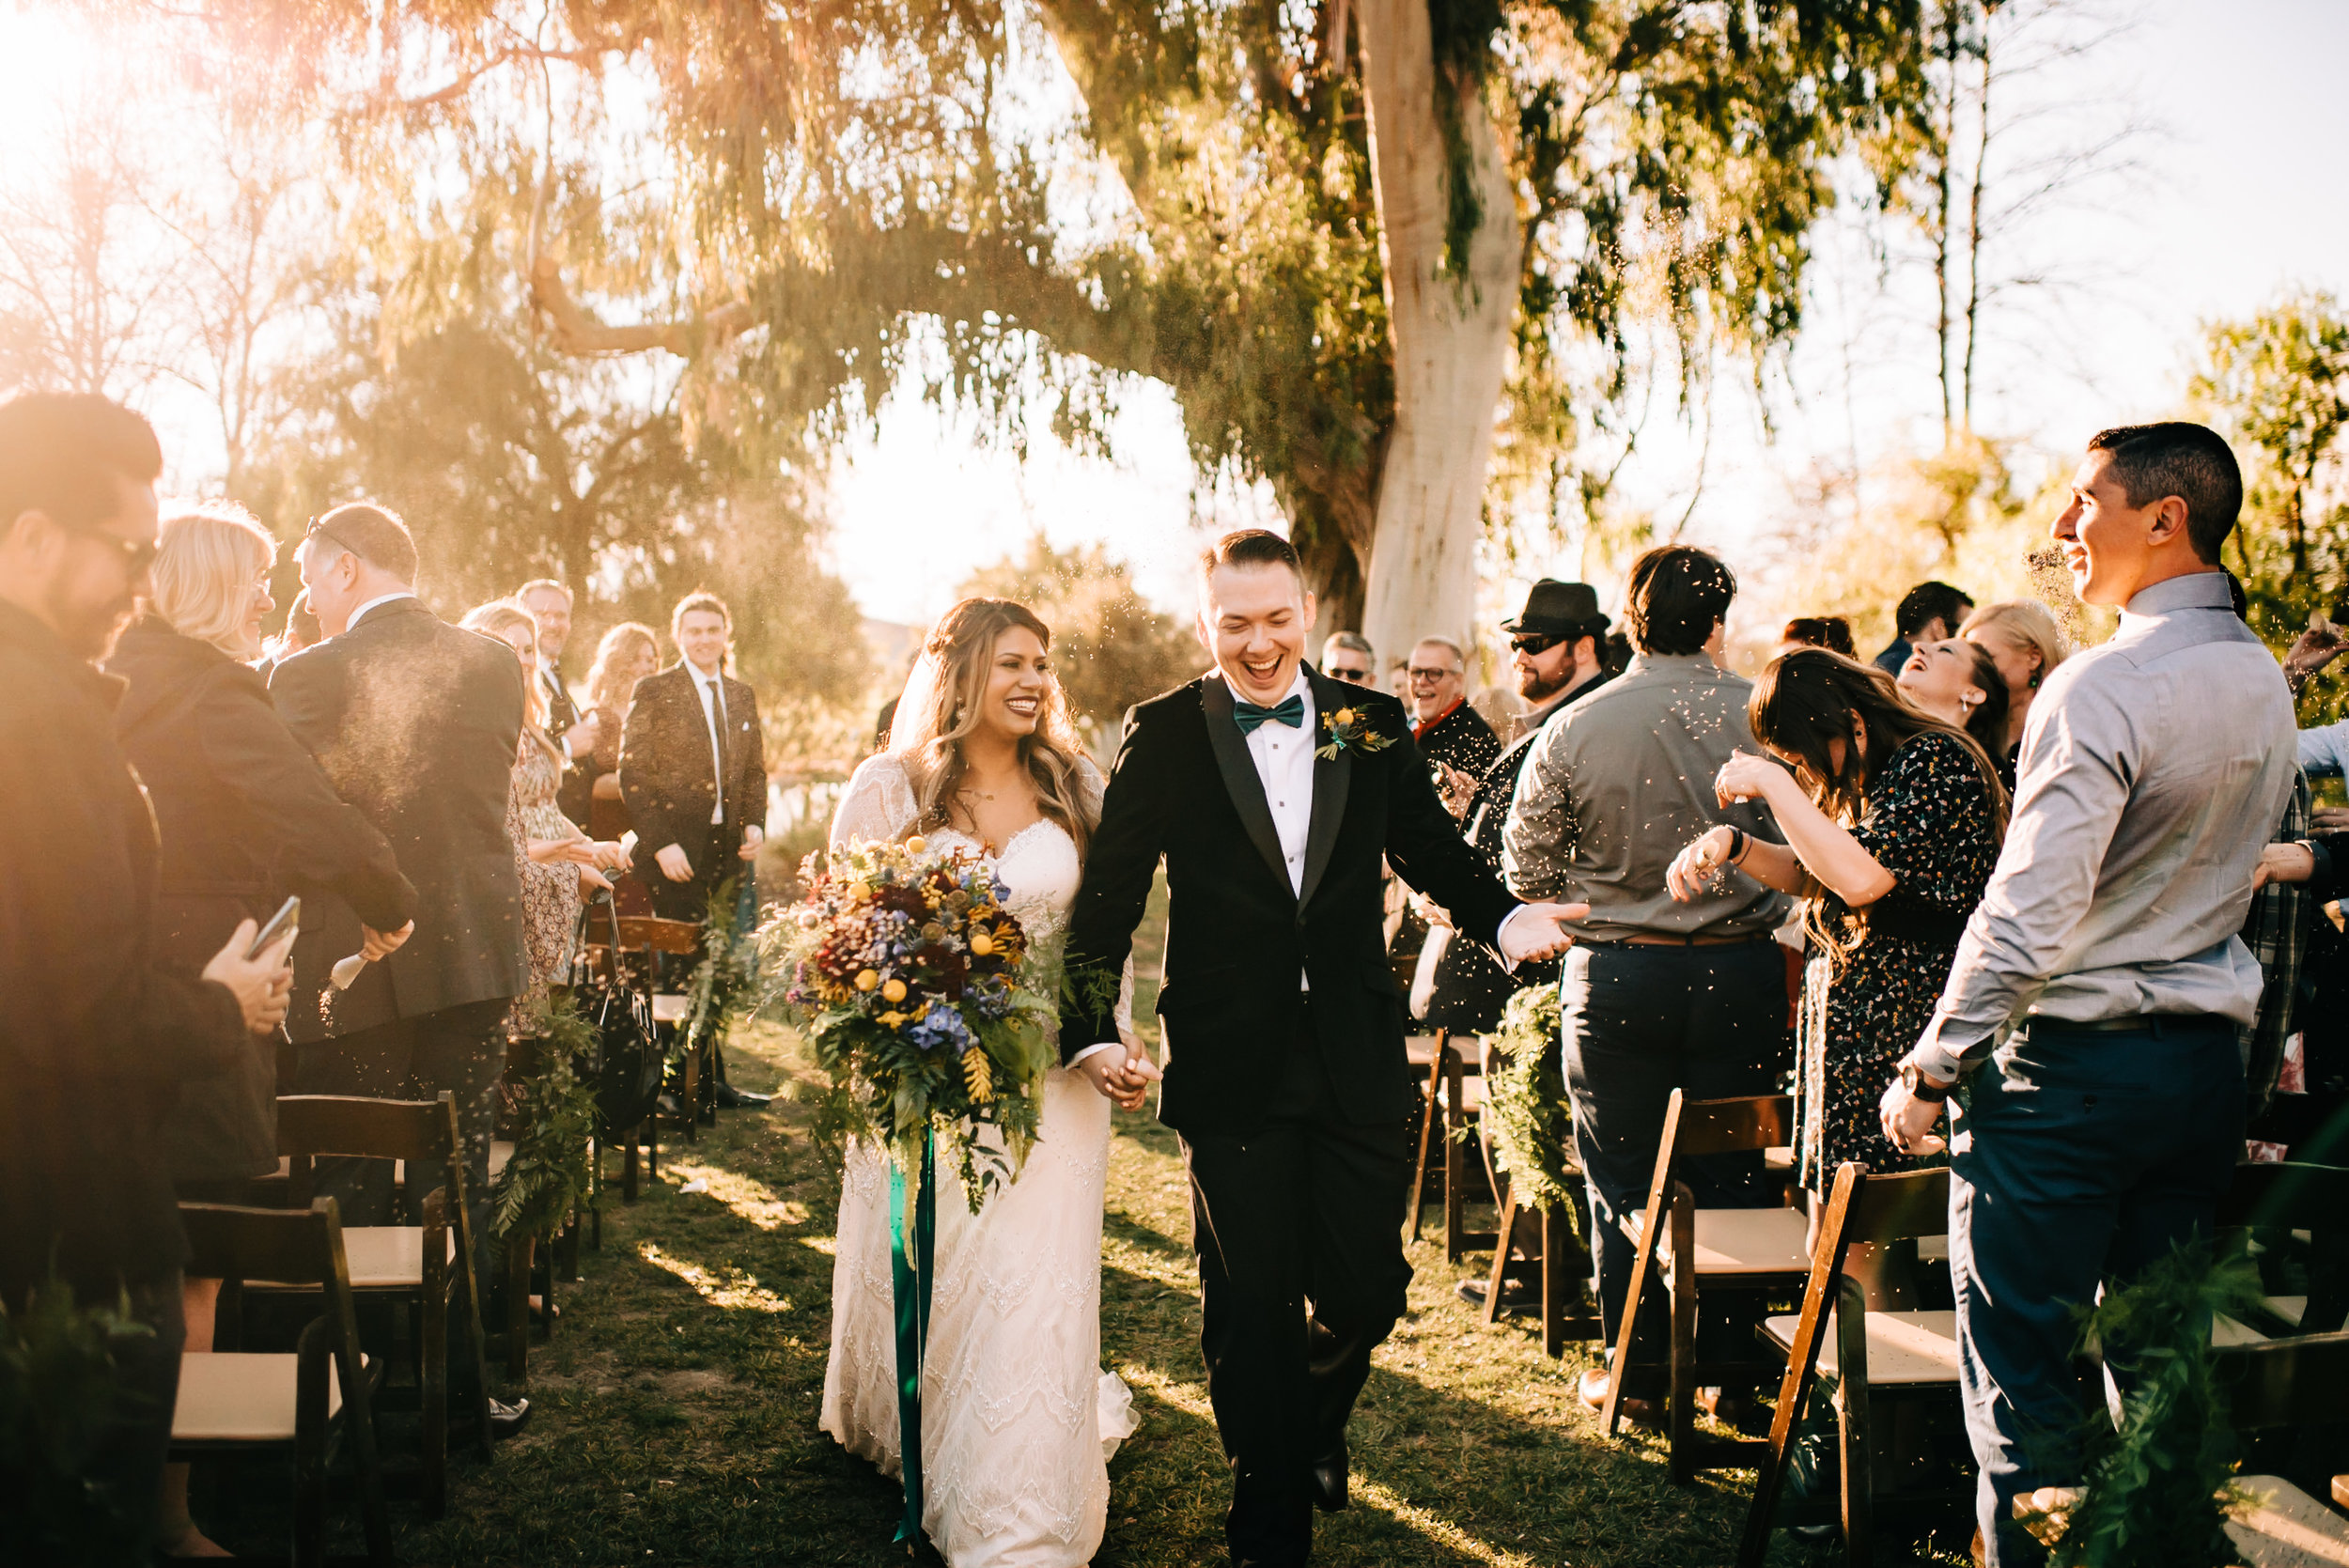 bay area nontraditional wedding photographer southern california boho wedding love light magic san francisco oakland northern california-634.jpg